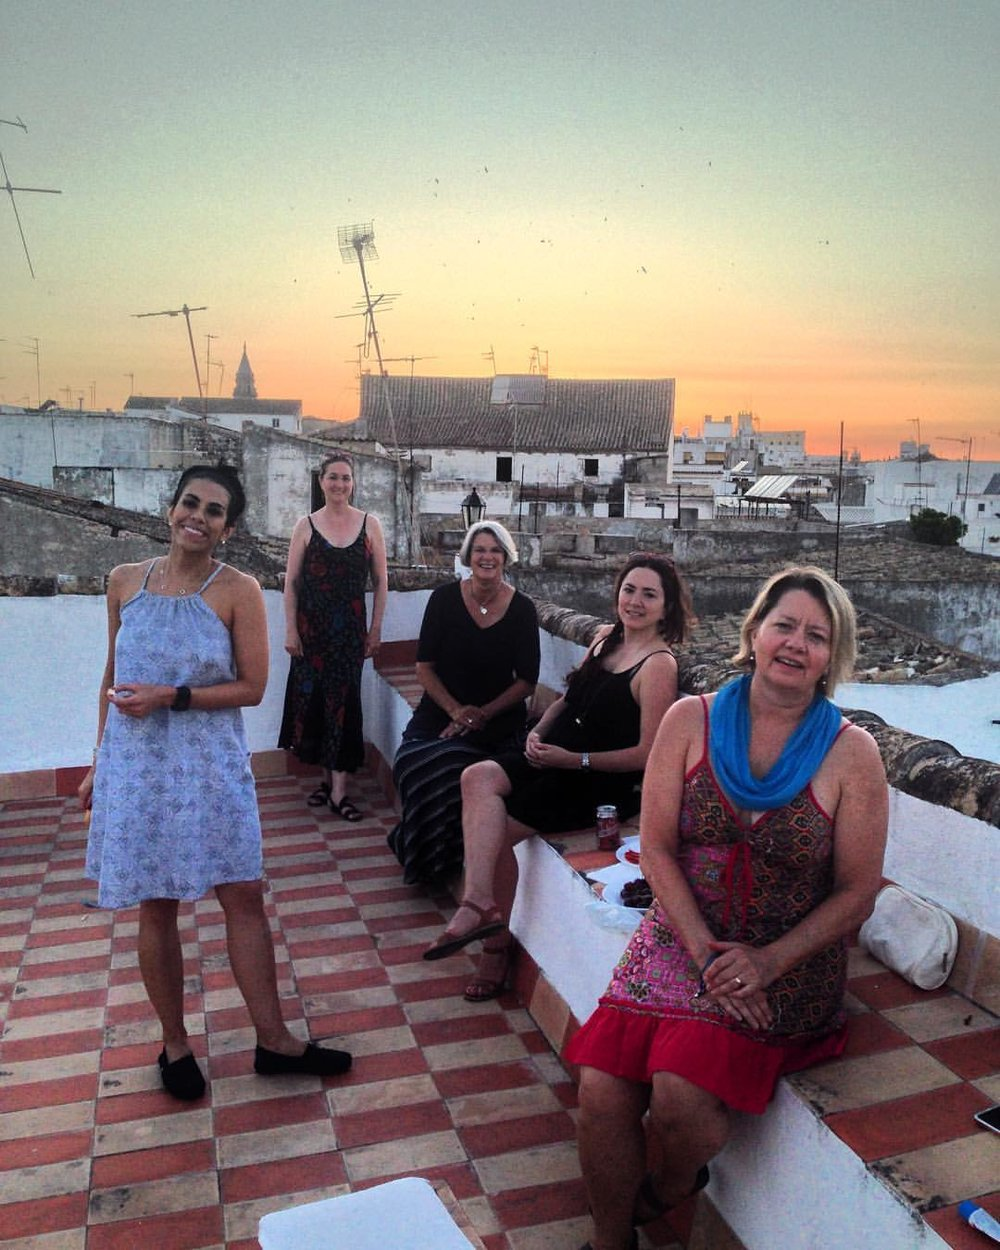 summer ladies on the rooftop at sunset.jpg